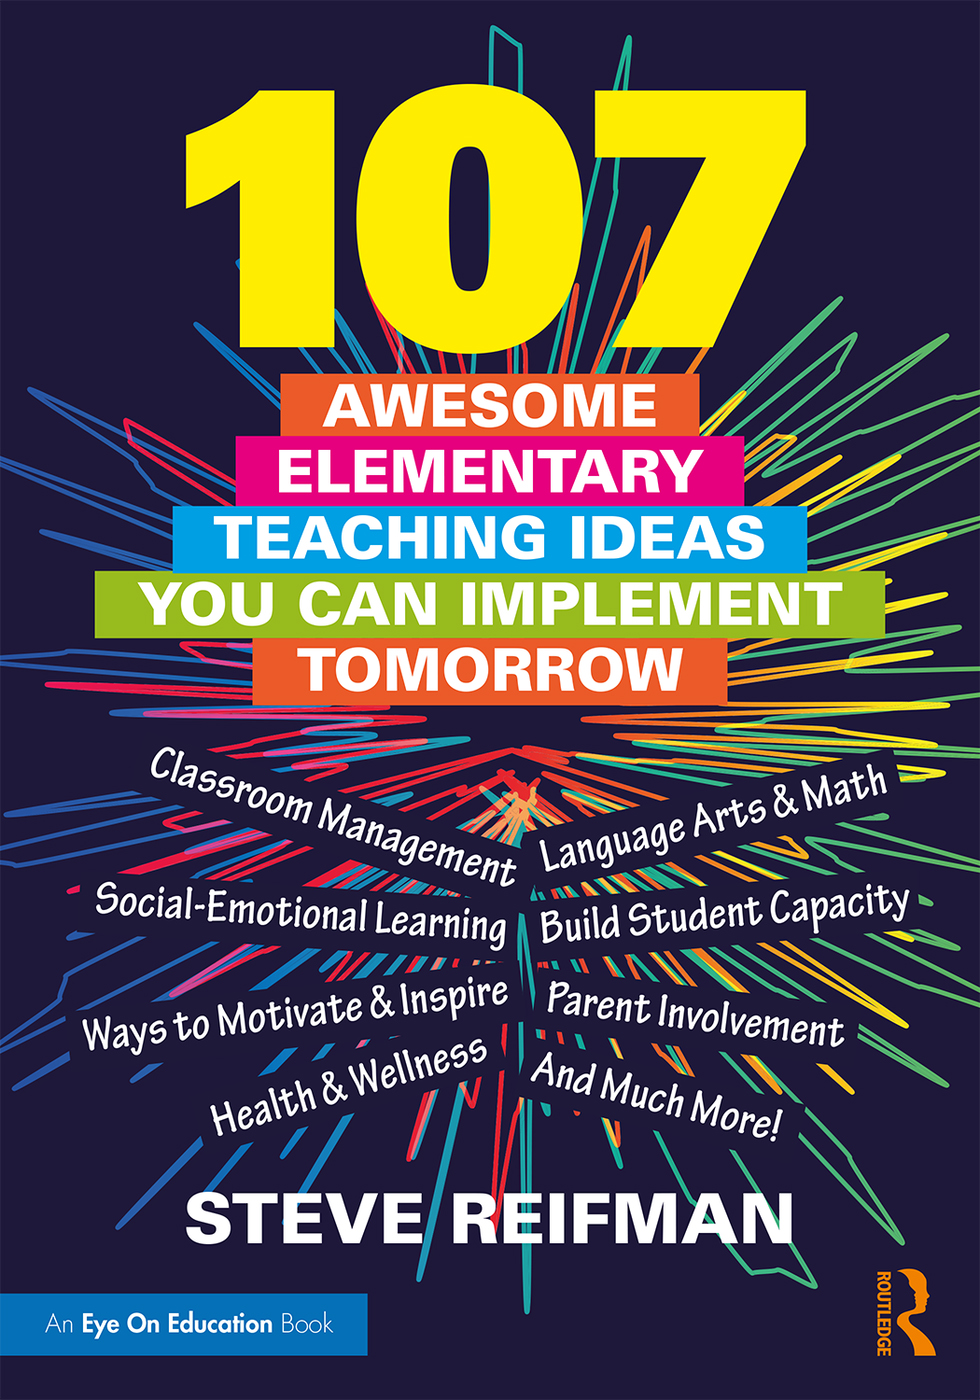 107 Awesome Elementary Teaching Ideas You Can Implement Tomorrow book cover